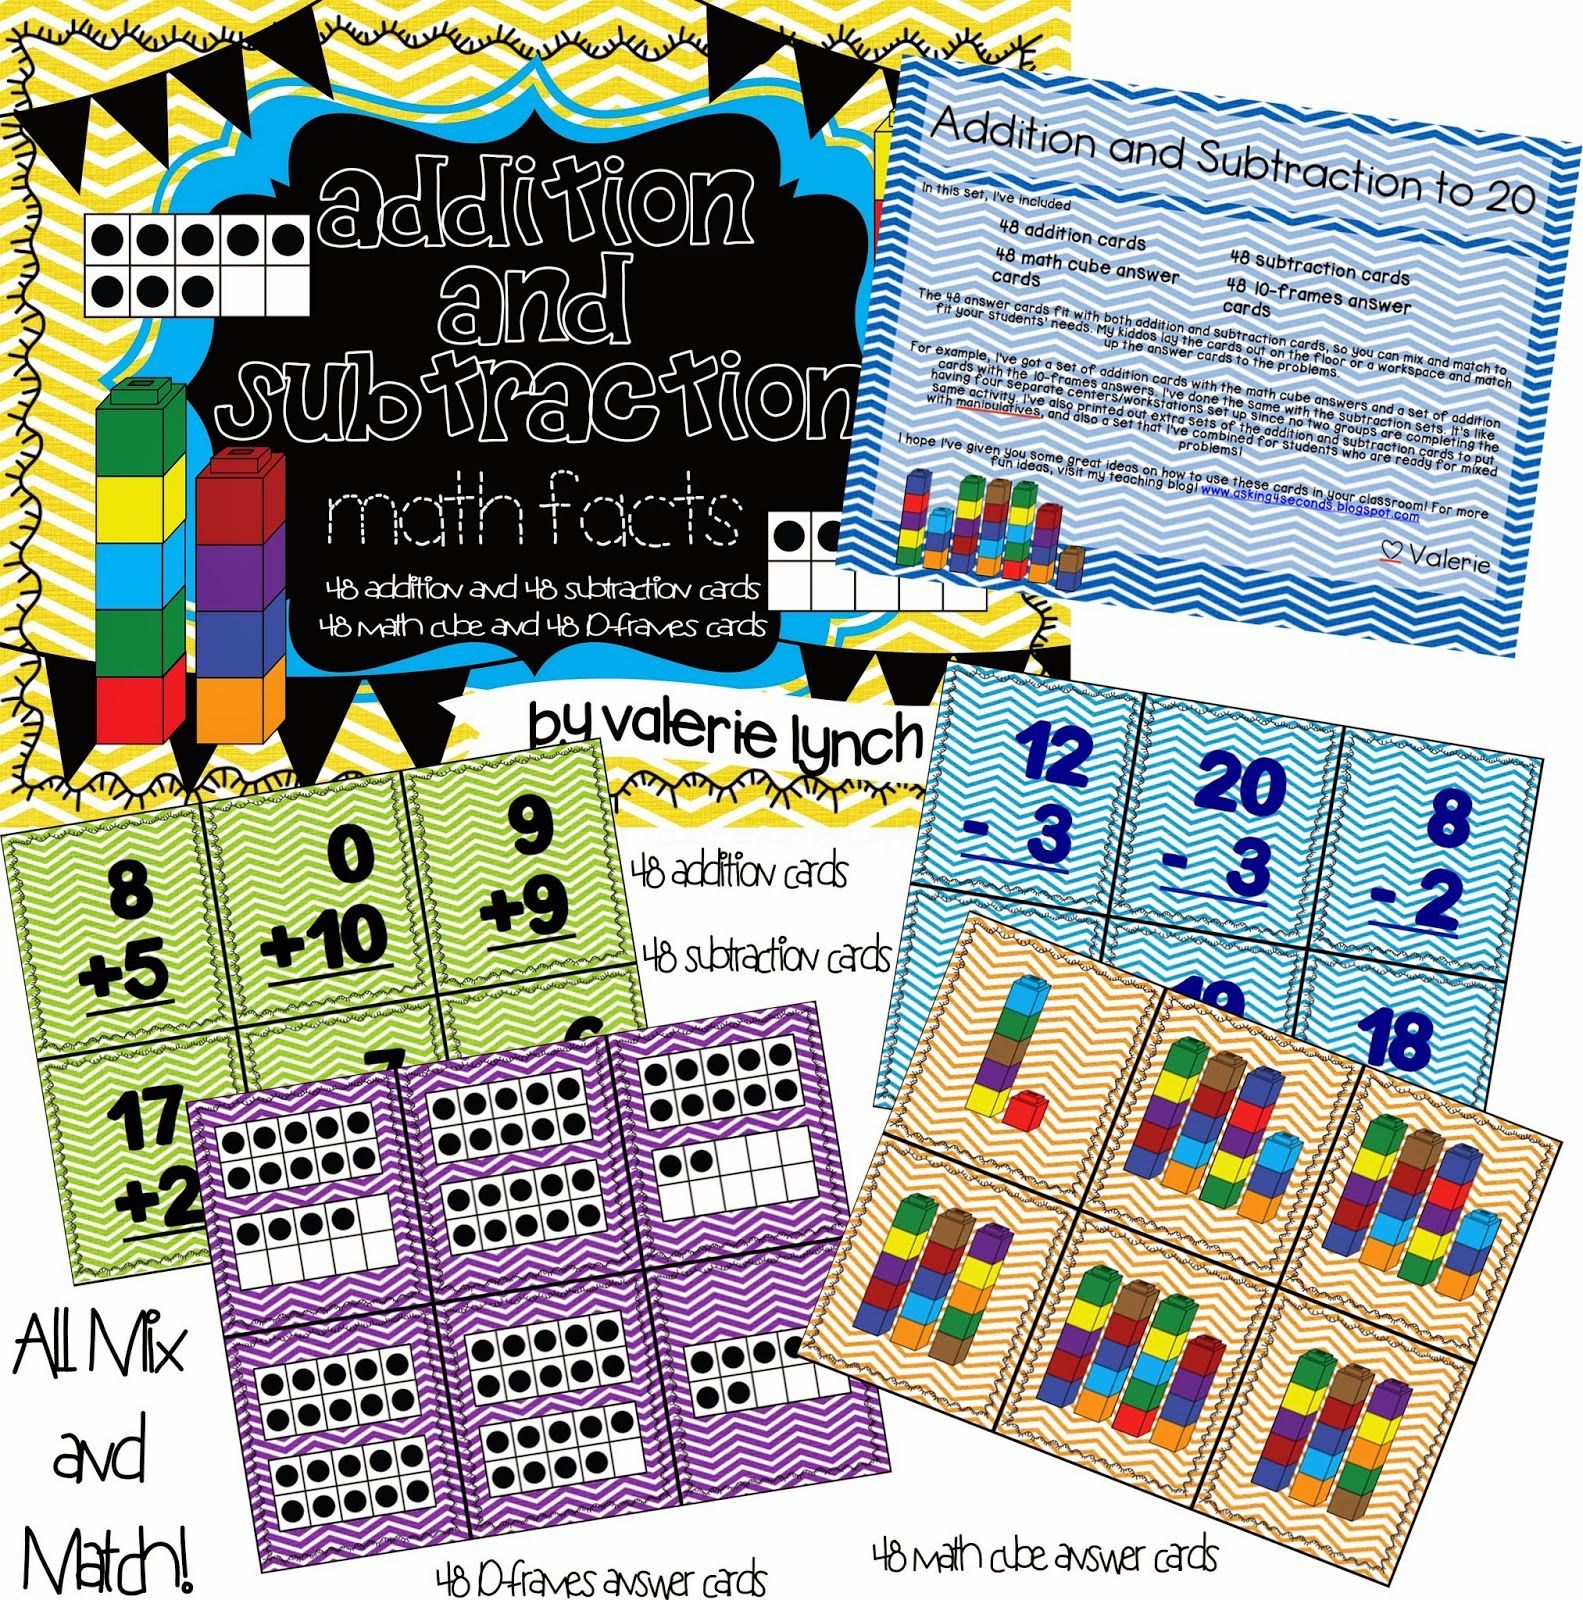 Addition And Subtraction To 20 48 Math Problems For